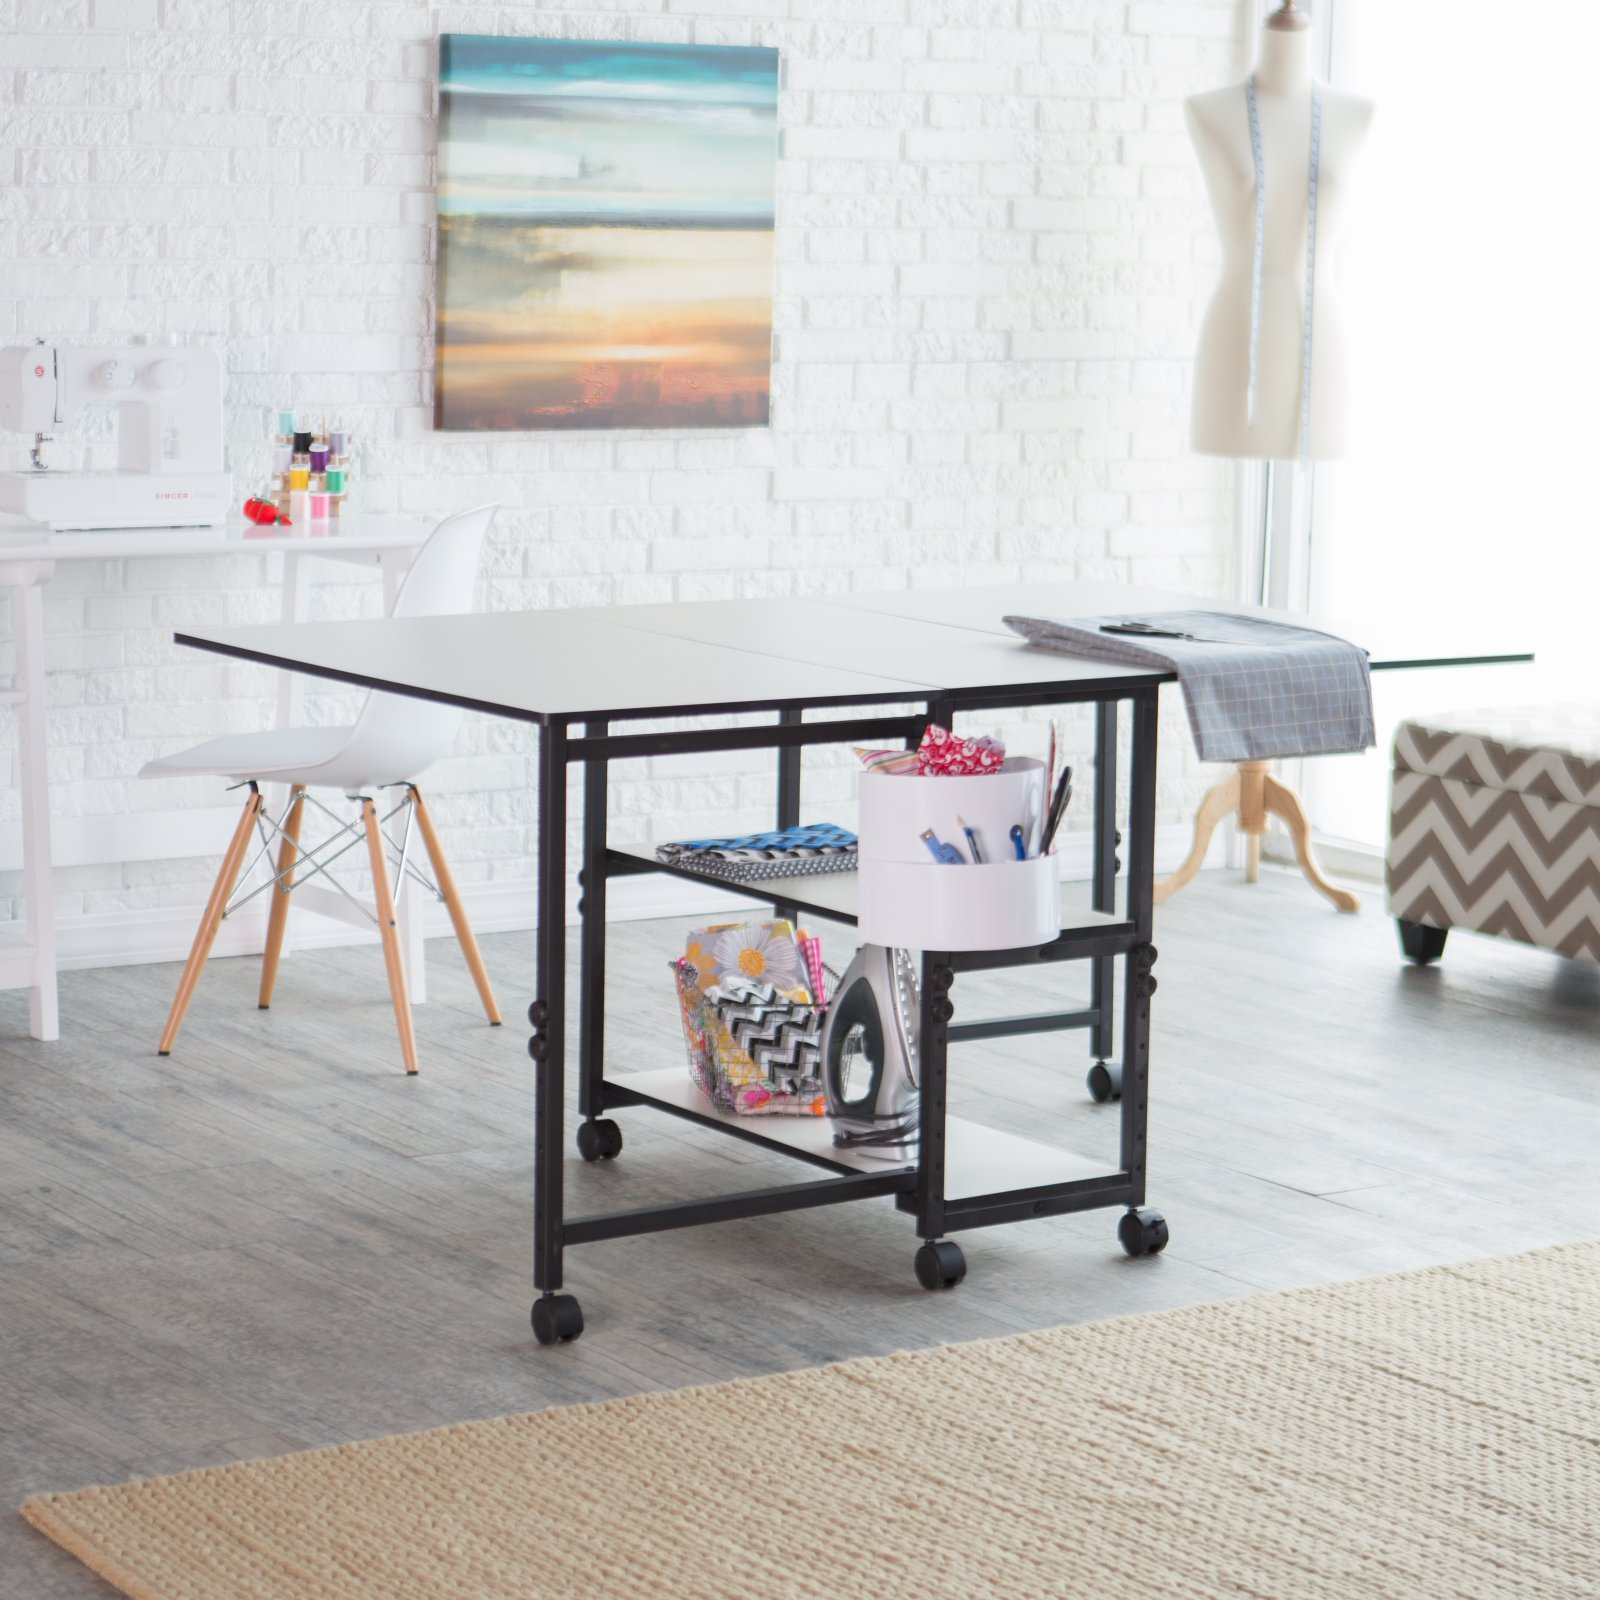 Sullivans USA Home Hobby Adjustable Height Foldable Table